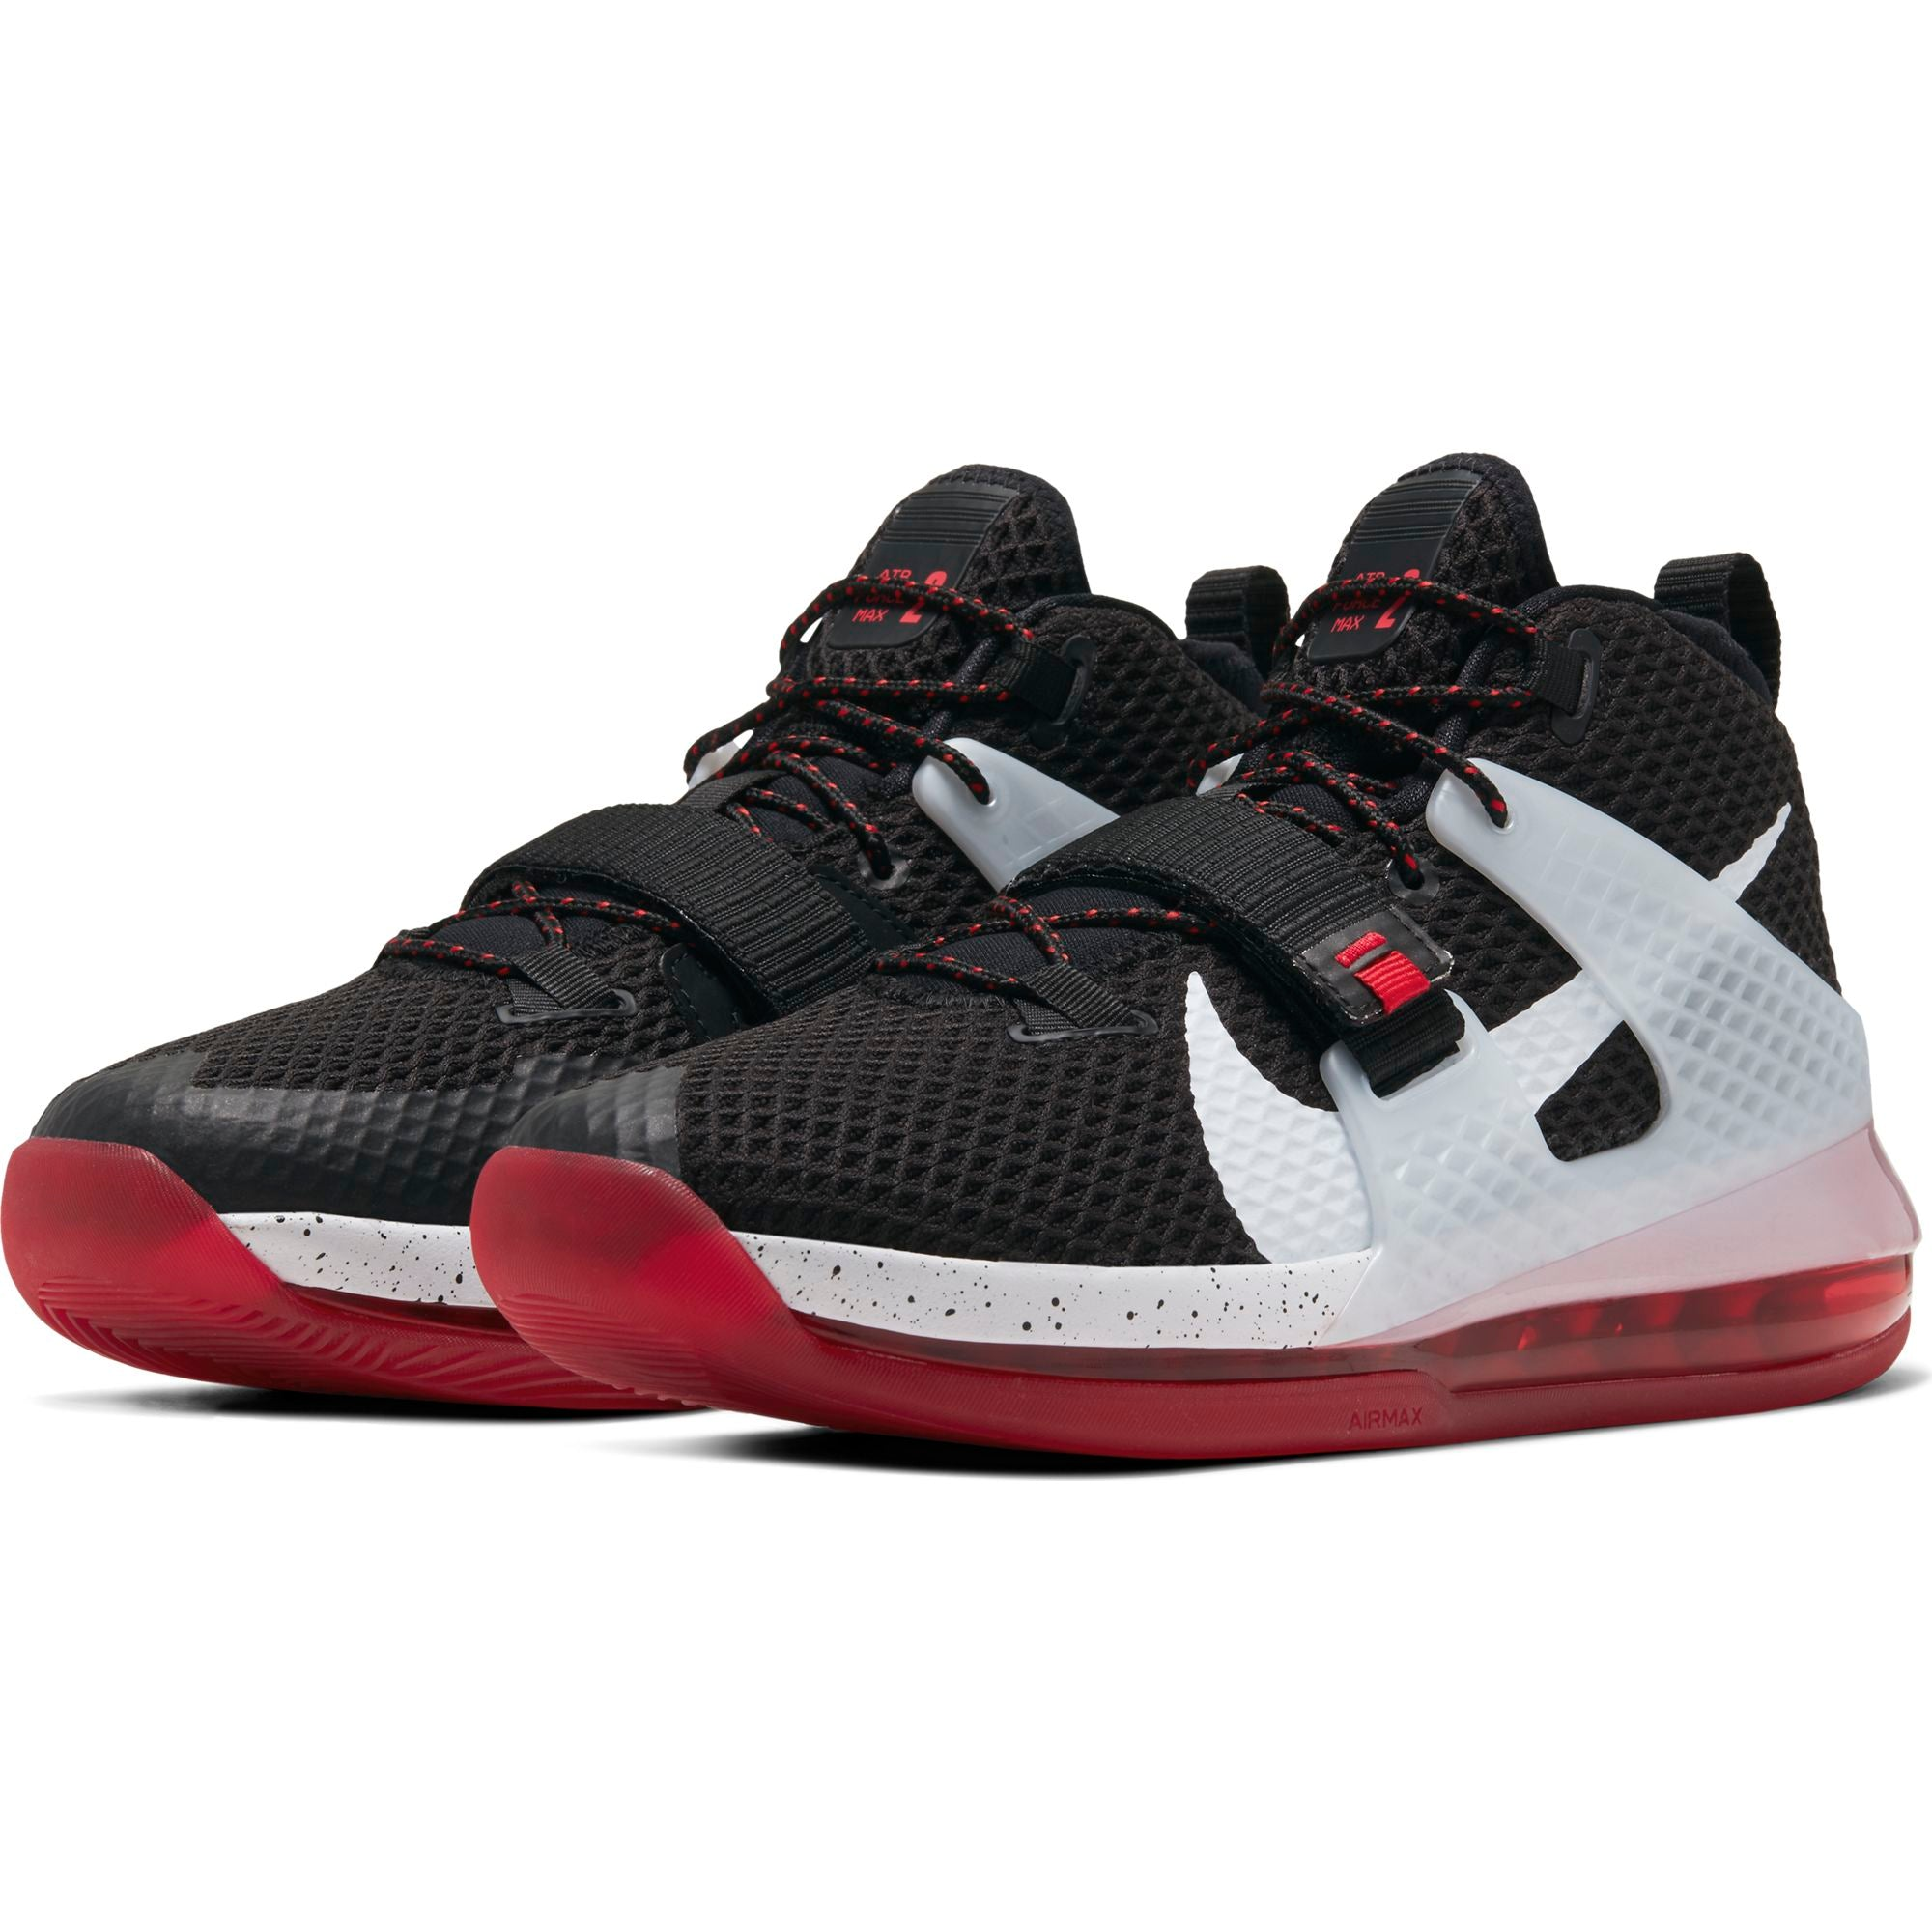 Nike Basketball Air Force Max II Basketball Boot/Shoe - Black/White/University Red/Wolf Grey